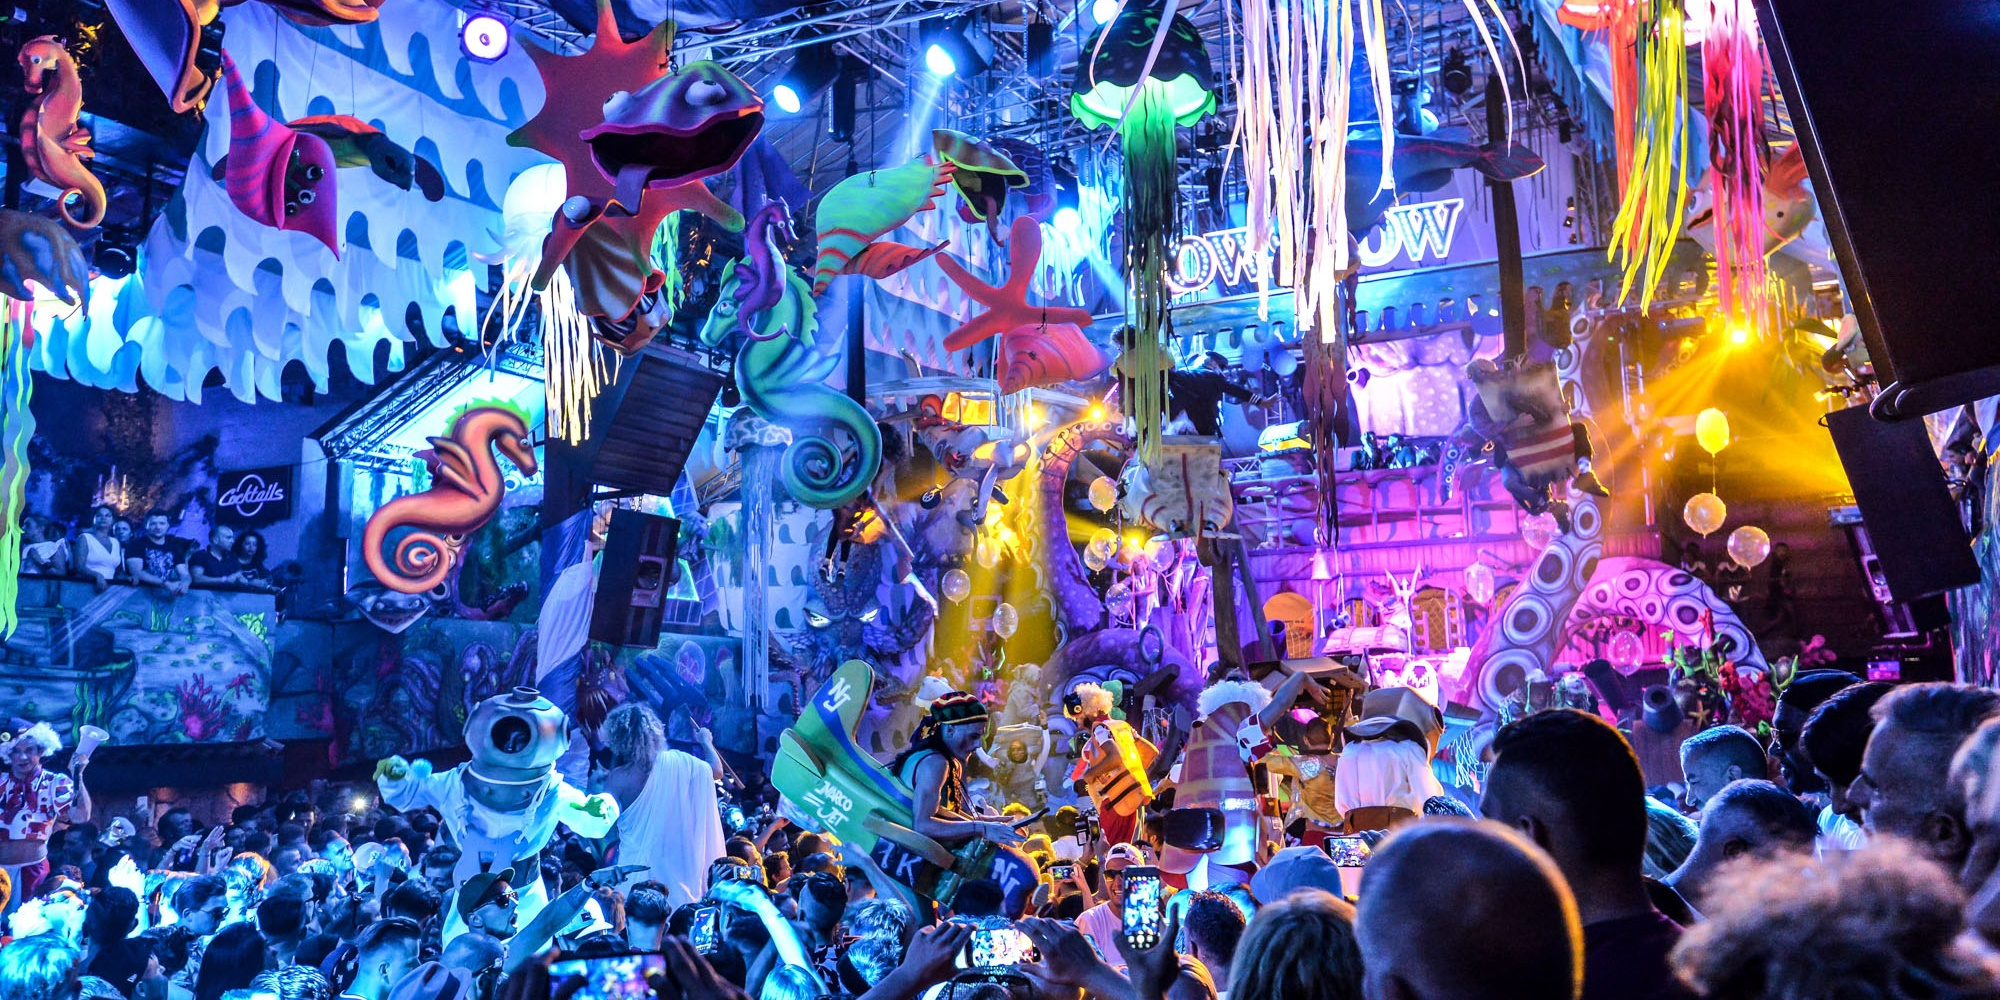 """""""I think we bring a different experience than just being in a dark room with loud music"""": An interview with Victor de la Serna, Music Director of elrow"""